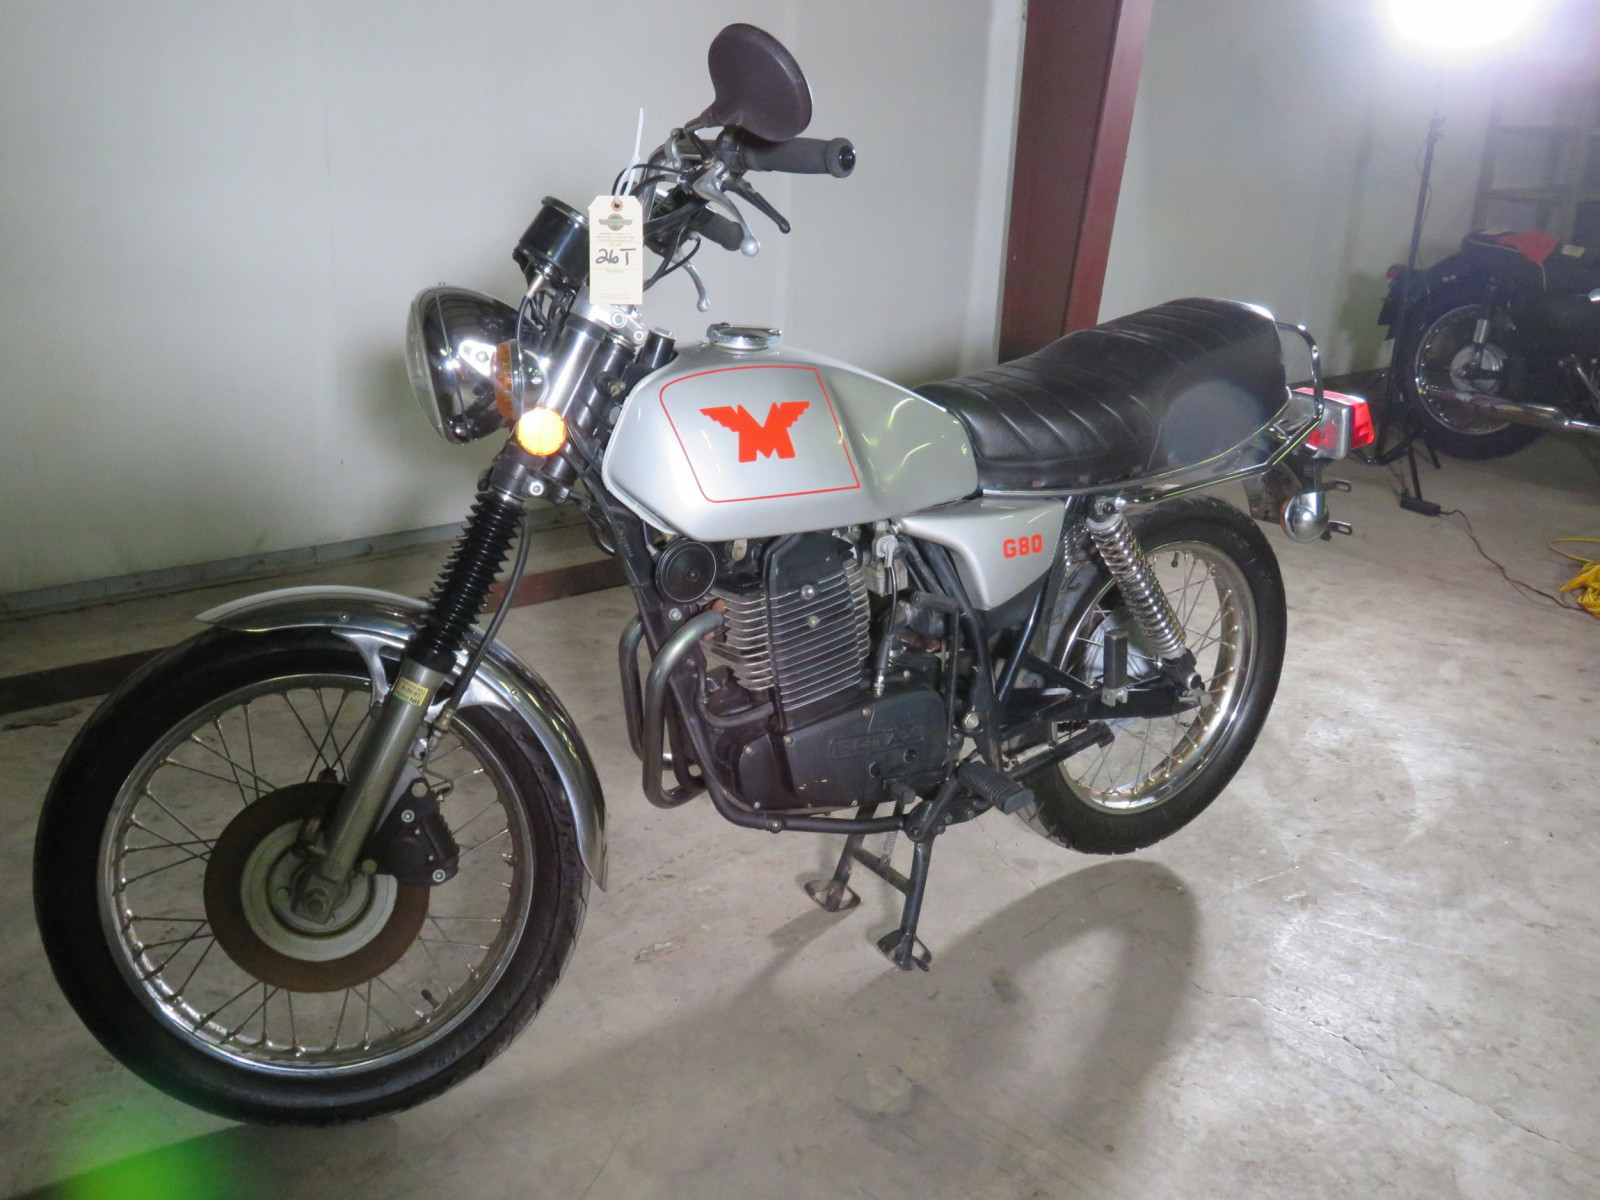 Rare 1988 Matchless G80 Rotax Power Motorcycle - Image 1